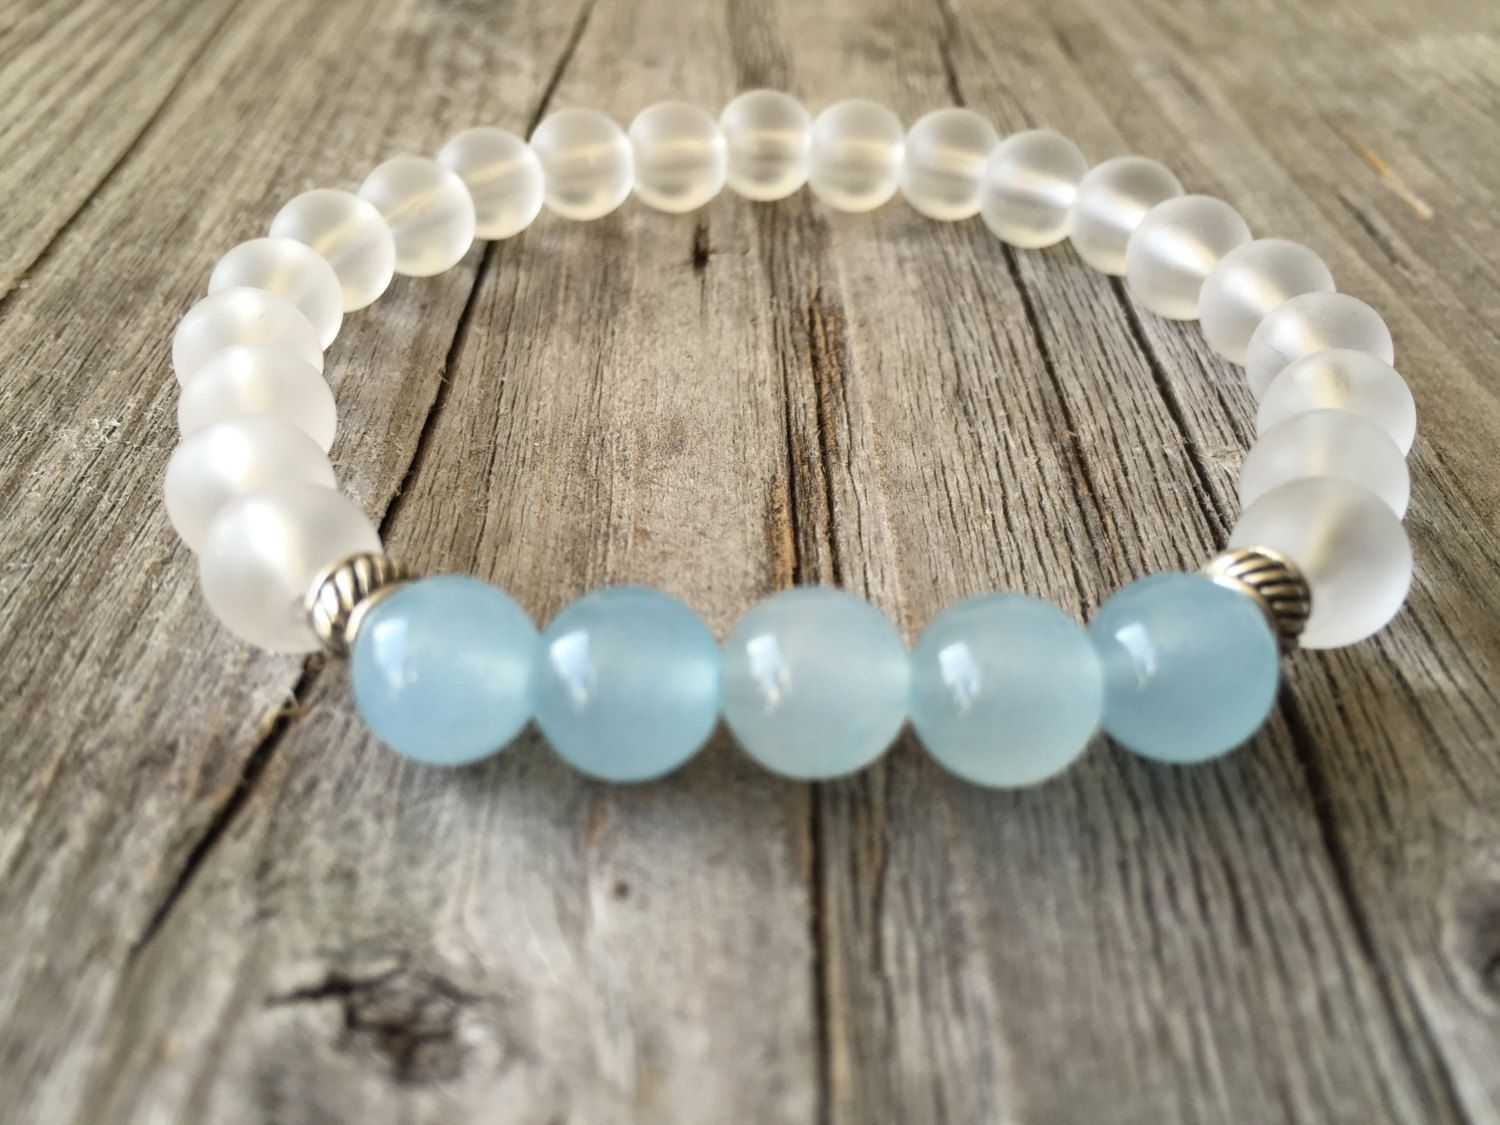 Summer Bracelet, Gemstone bracelet, Unisex bracelet, Woman bracelet, Men bracelet, Stretch stacking bracelet, Gemstone Jewelery, gemstone door KennlyDesign op Etsy